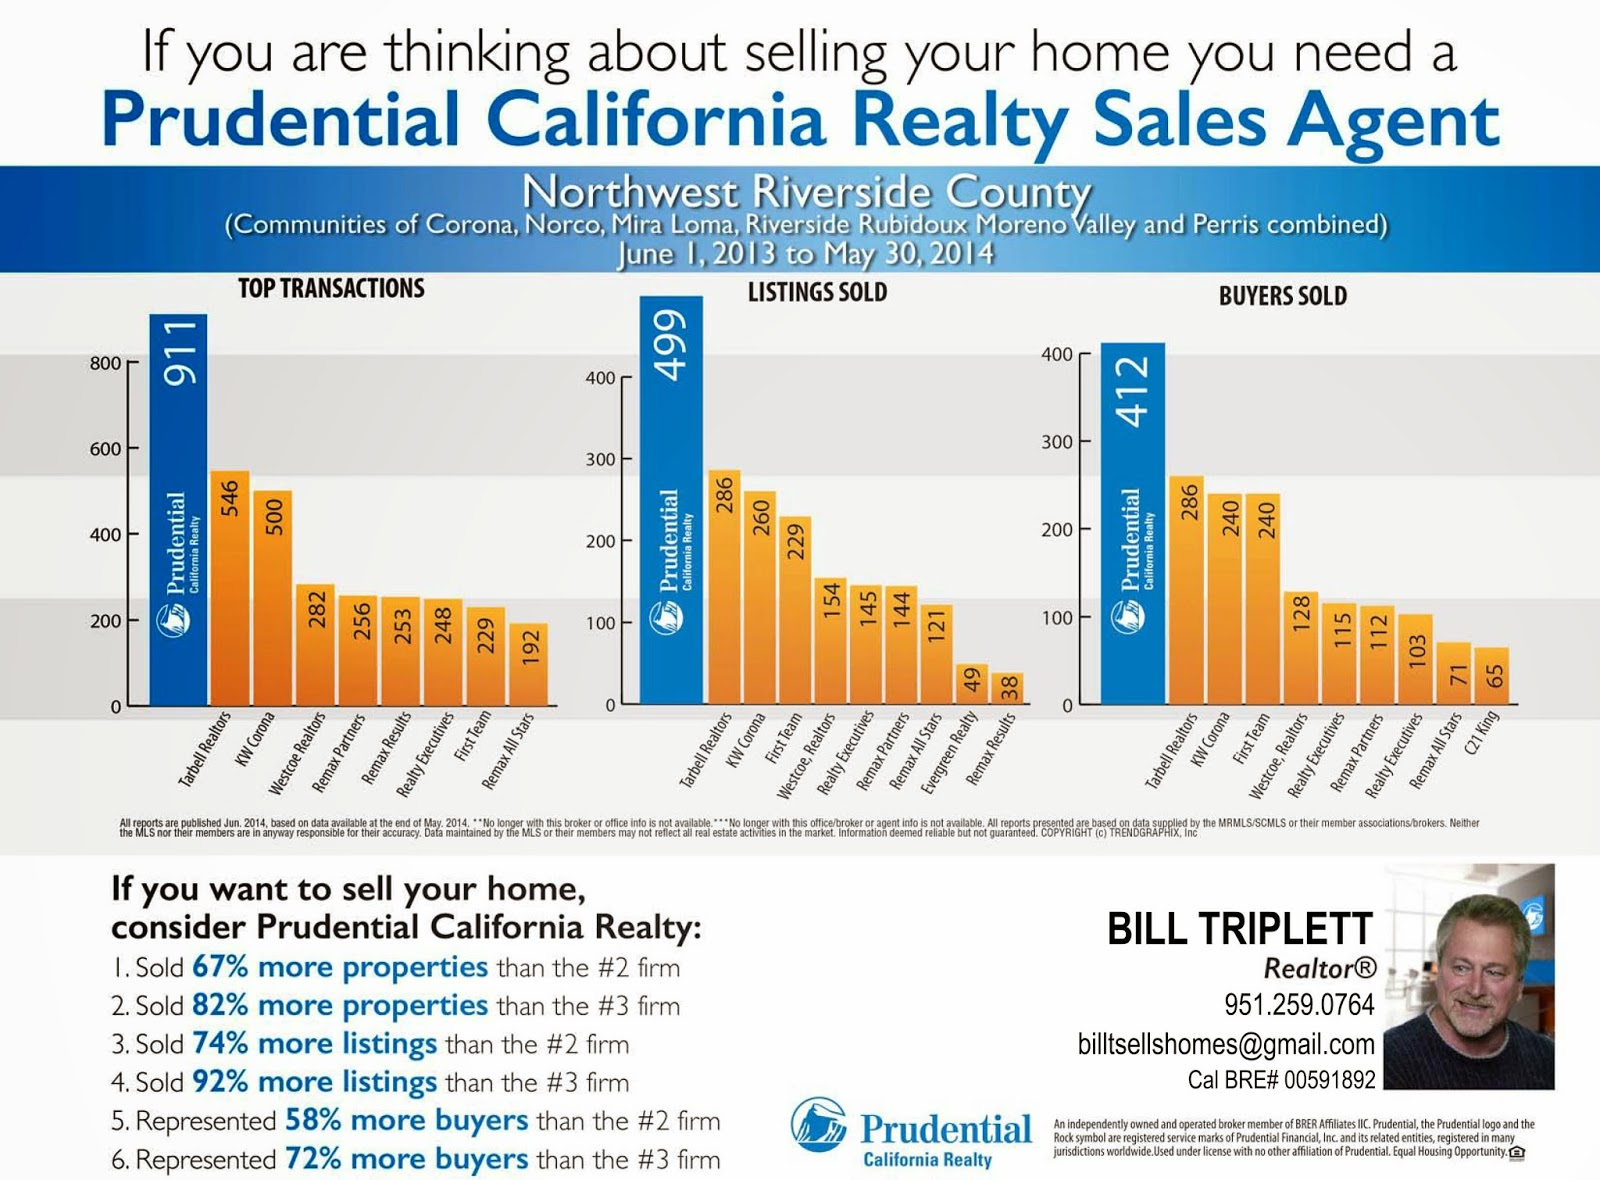 http://www.thetriplettgroupsocal.com/Moreno Valley Homes for Sale Dominance.pdf